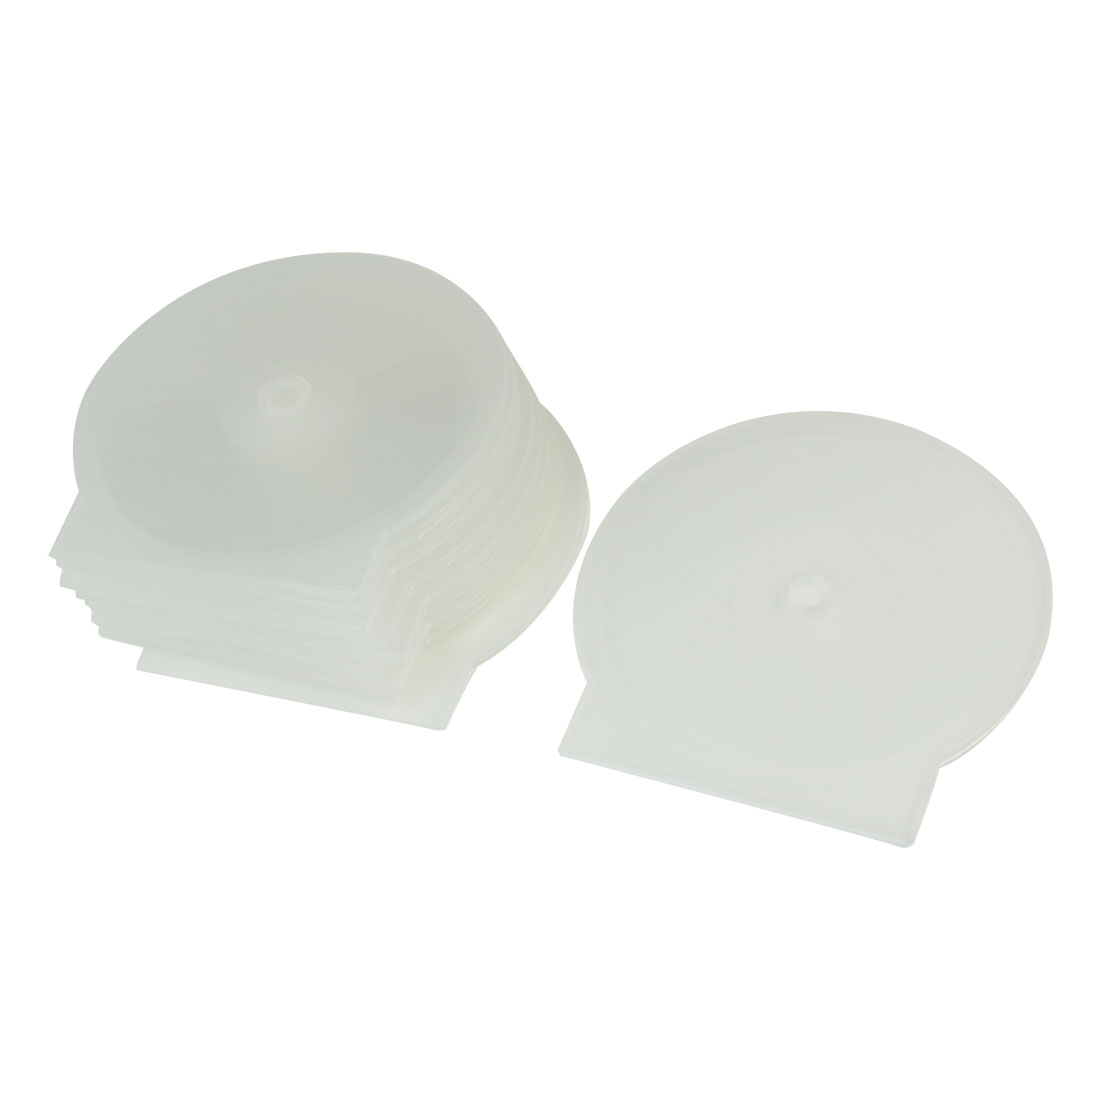 "10 Pcs Round Design Cases Plastic Clear White 4.8"" Diameter DVD CD Box Holder"